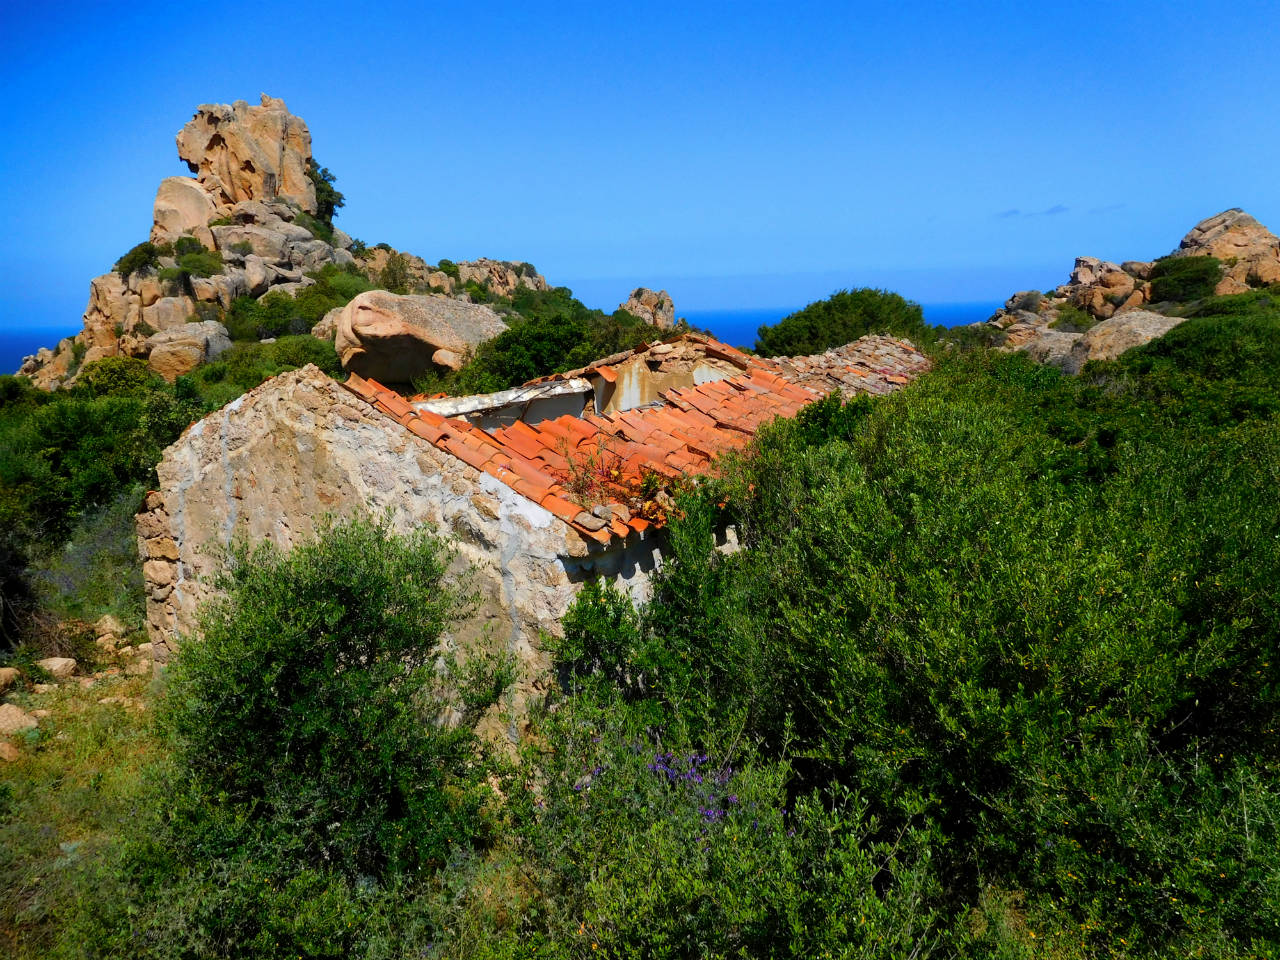 Sea view farmhouse for sale in Sardinia, a rare jewel in Trinità D'Agultu, 4ha land between granite and green bush.